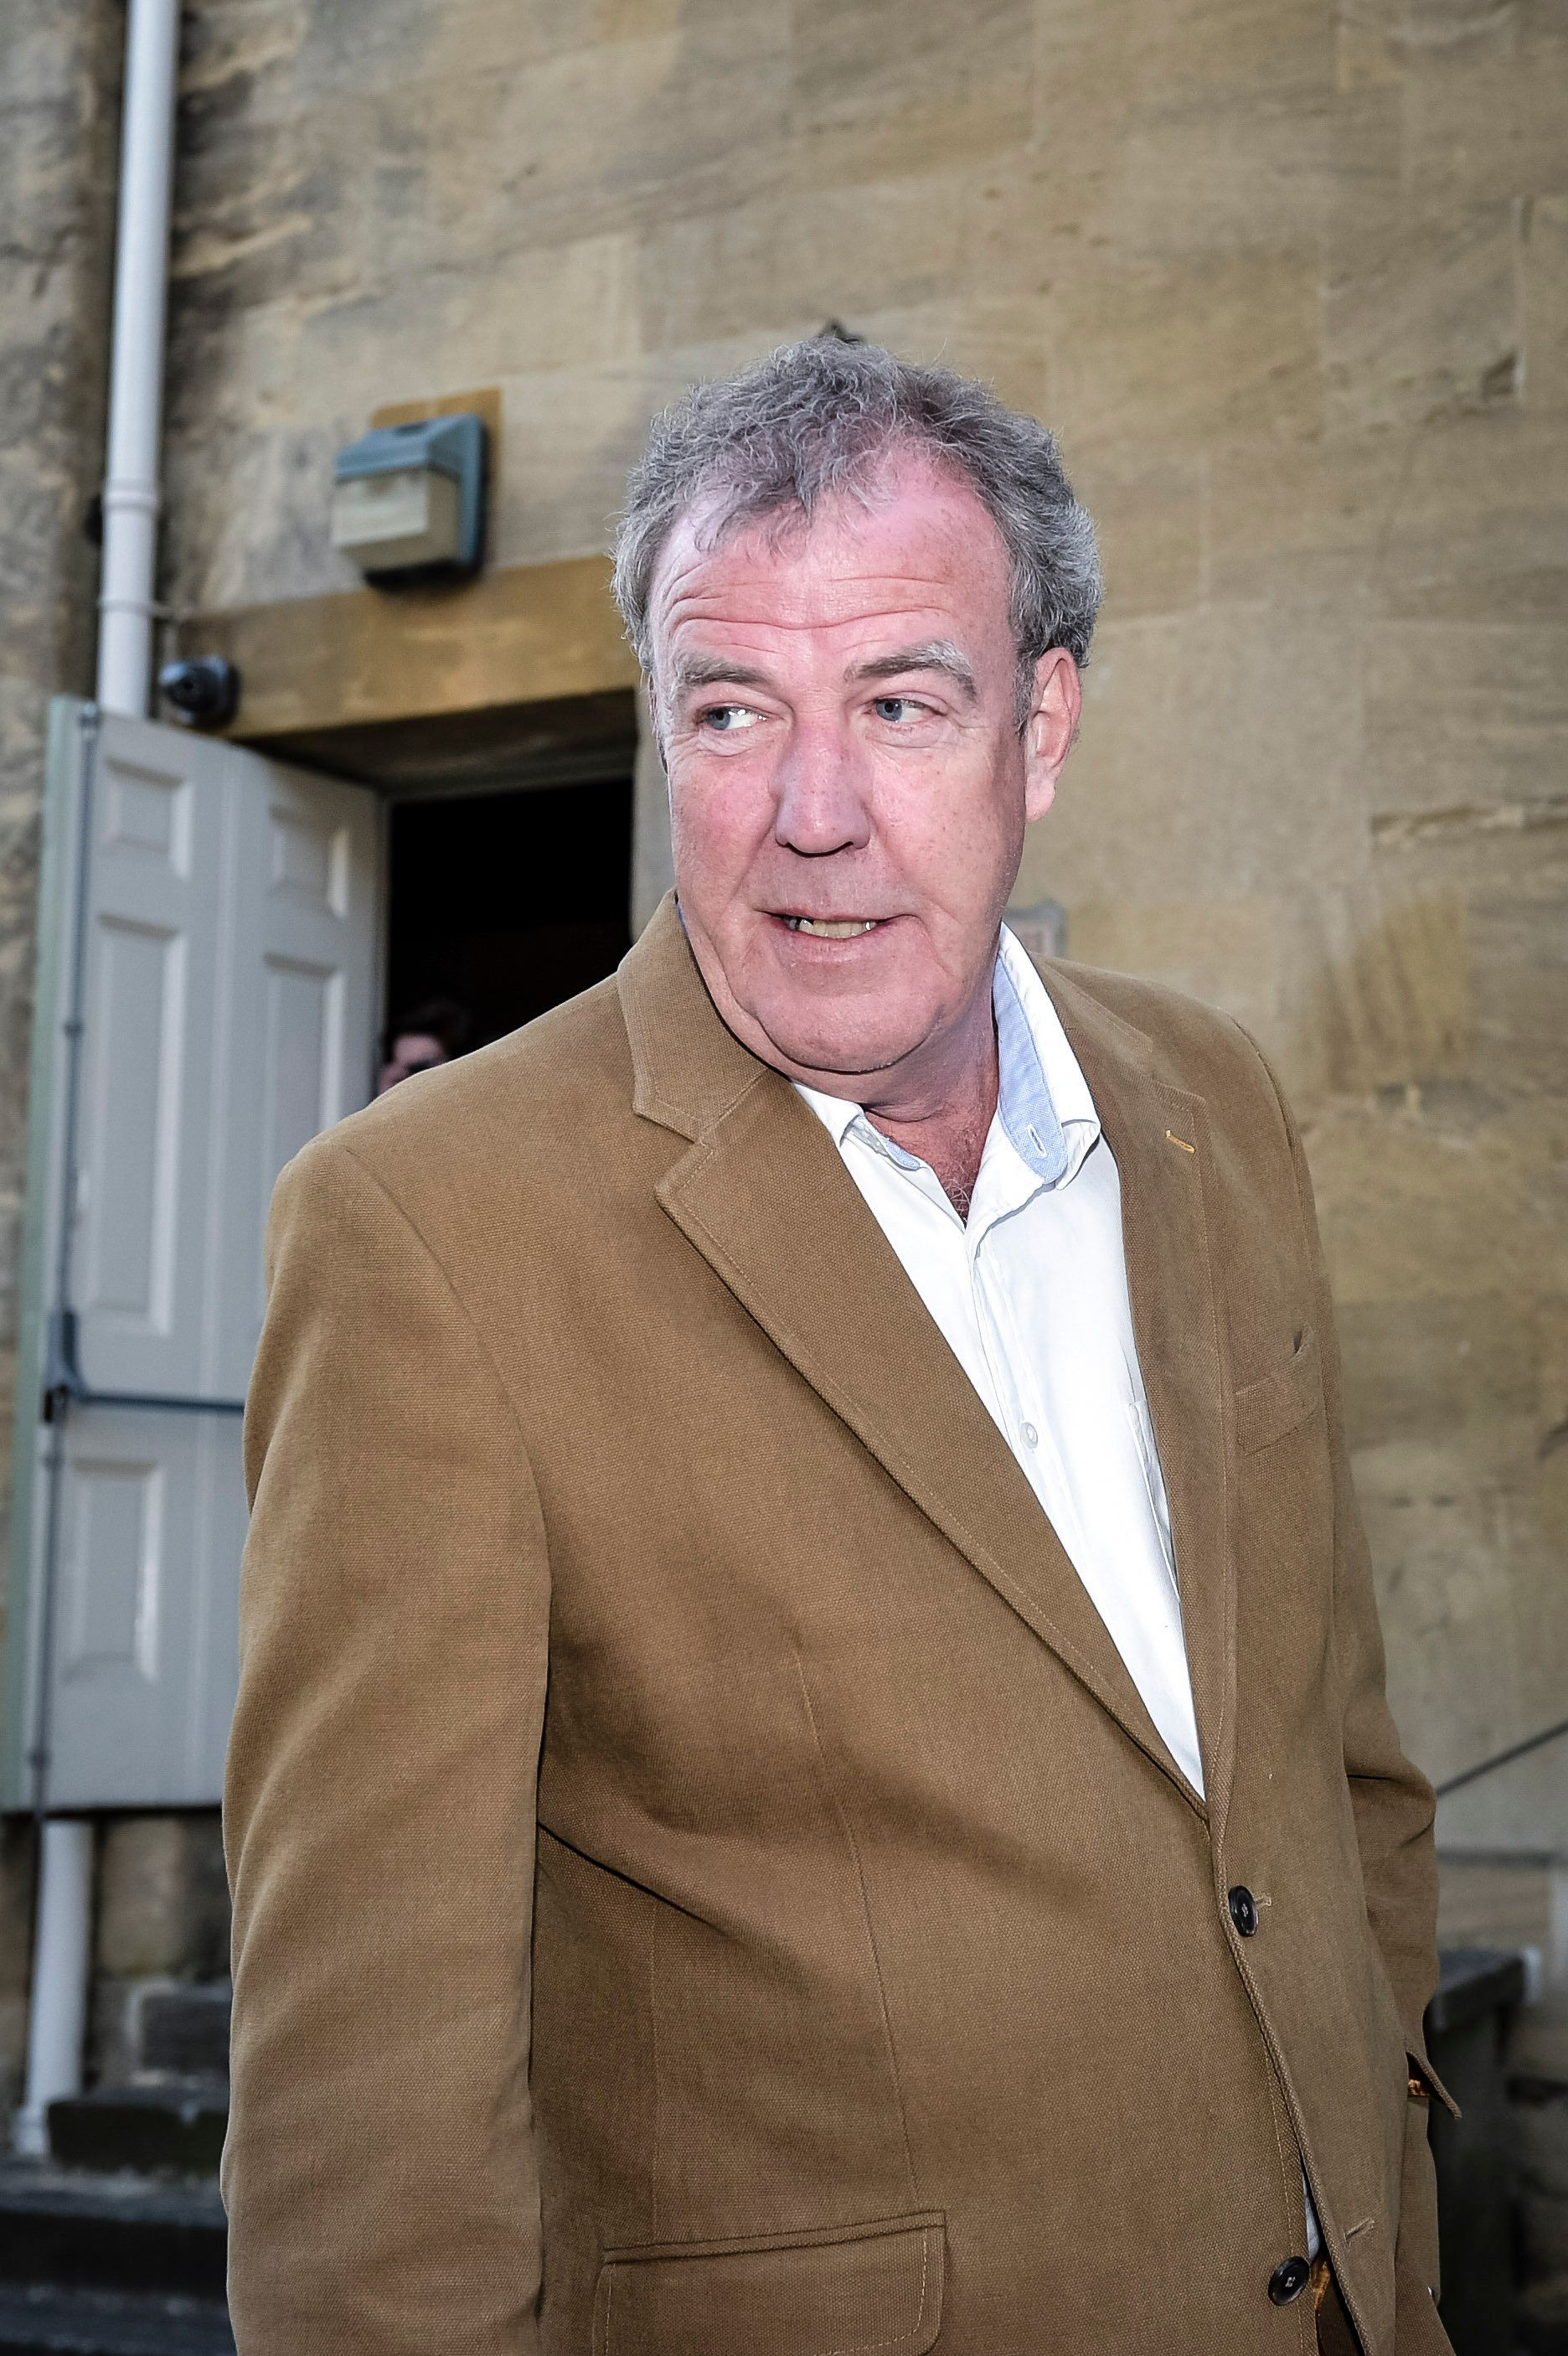 Jeremy Clarkson Opens Up About The Severity Of Recent Hospital